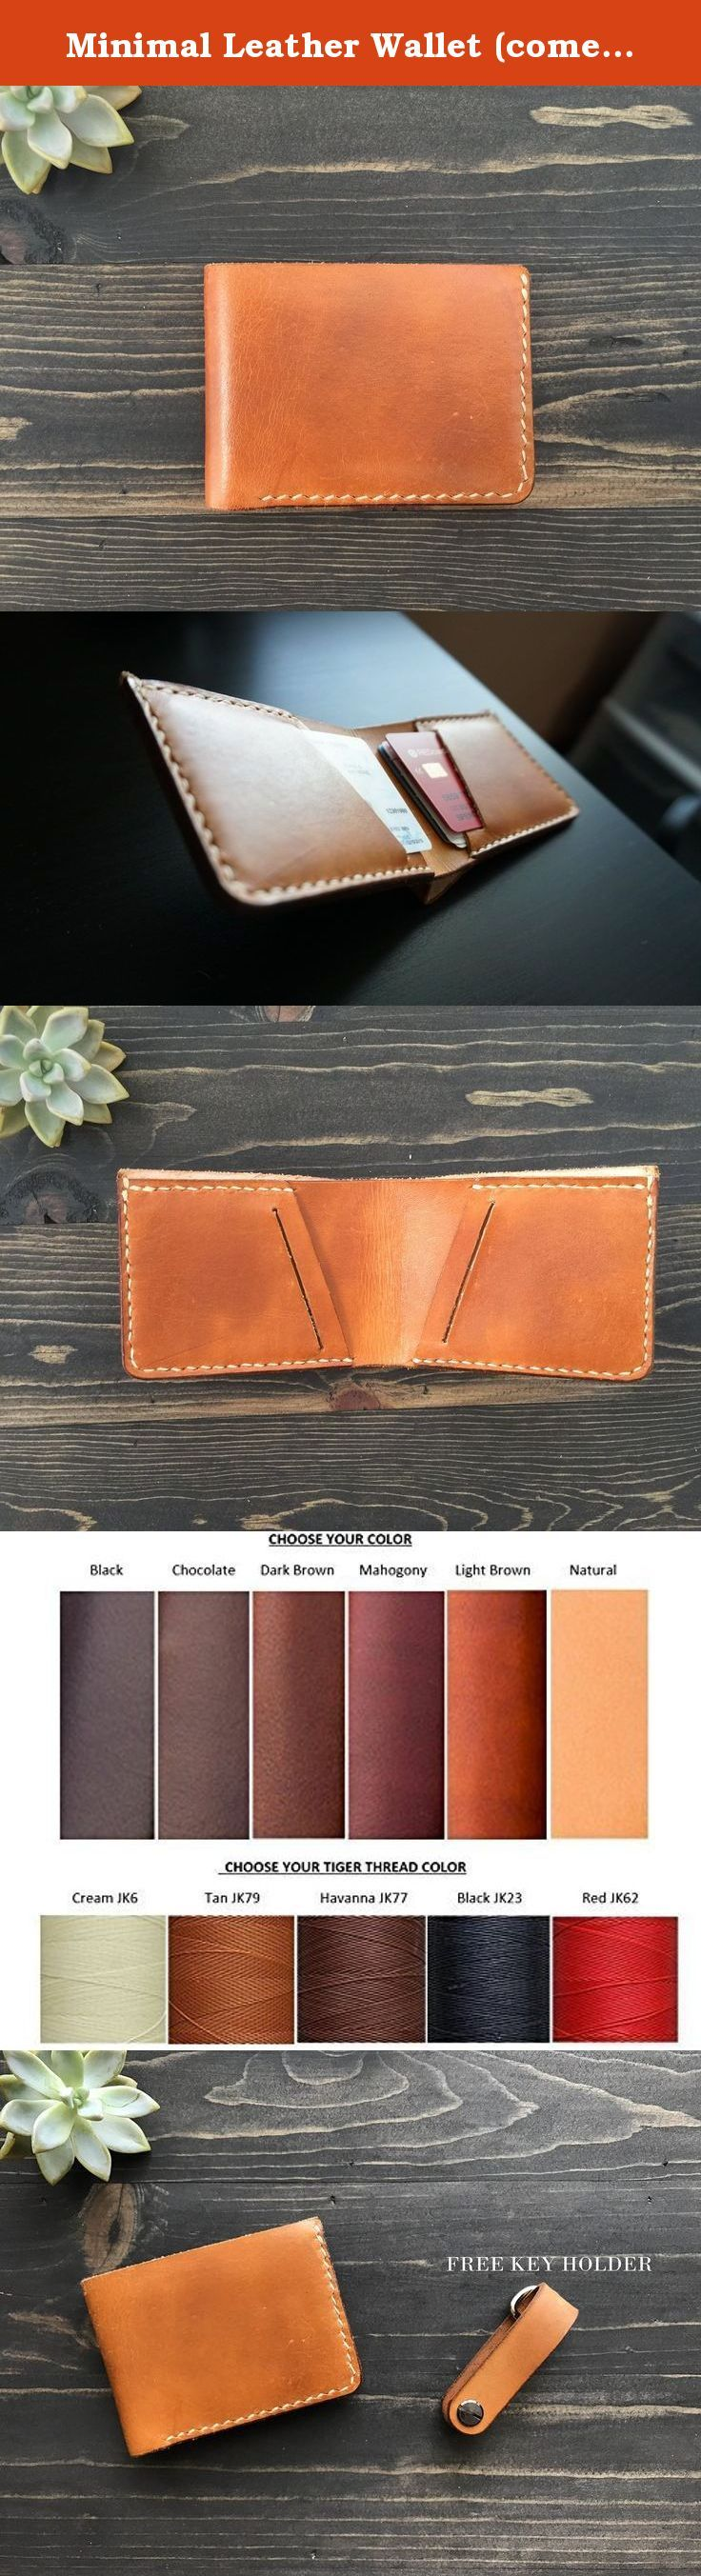 Minimal Leather Wallet (comes with FREE KEY HOLDER). This 4'' x 3'' wallet is the new face of minimalism. Paired with the free key holder, your wallets will be less bulky. All wallets are made with the finest Vegetable Tanned Leather. They are all hand cut, hand dyed and hand sewn. ****Since all products are natural, there may be signs of bug bites or stretch marks that may have been left on the animal's skin.****.